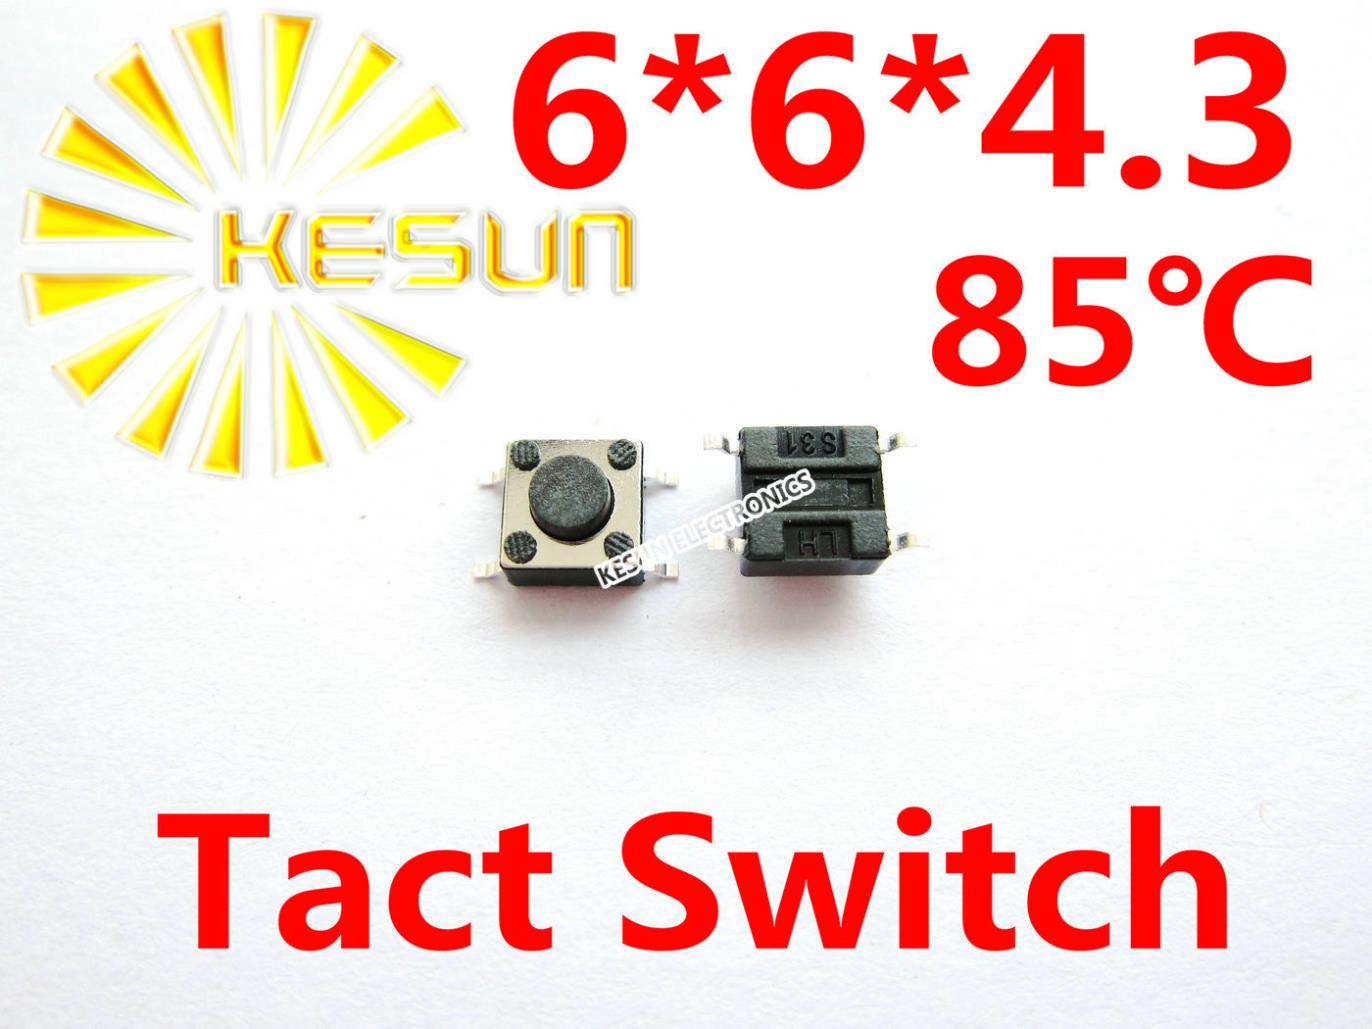 Intellective 1000pcs 6x6x4.3 Smd Tactile Tact Mini Push Button Switch Micro Switch Momentary Integrated Circuits Electronic Components & Supplies